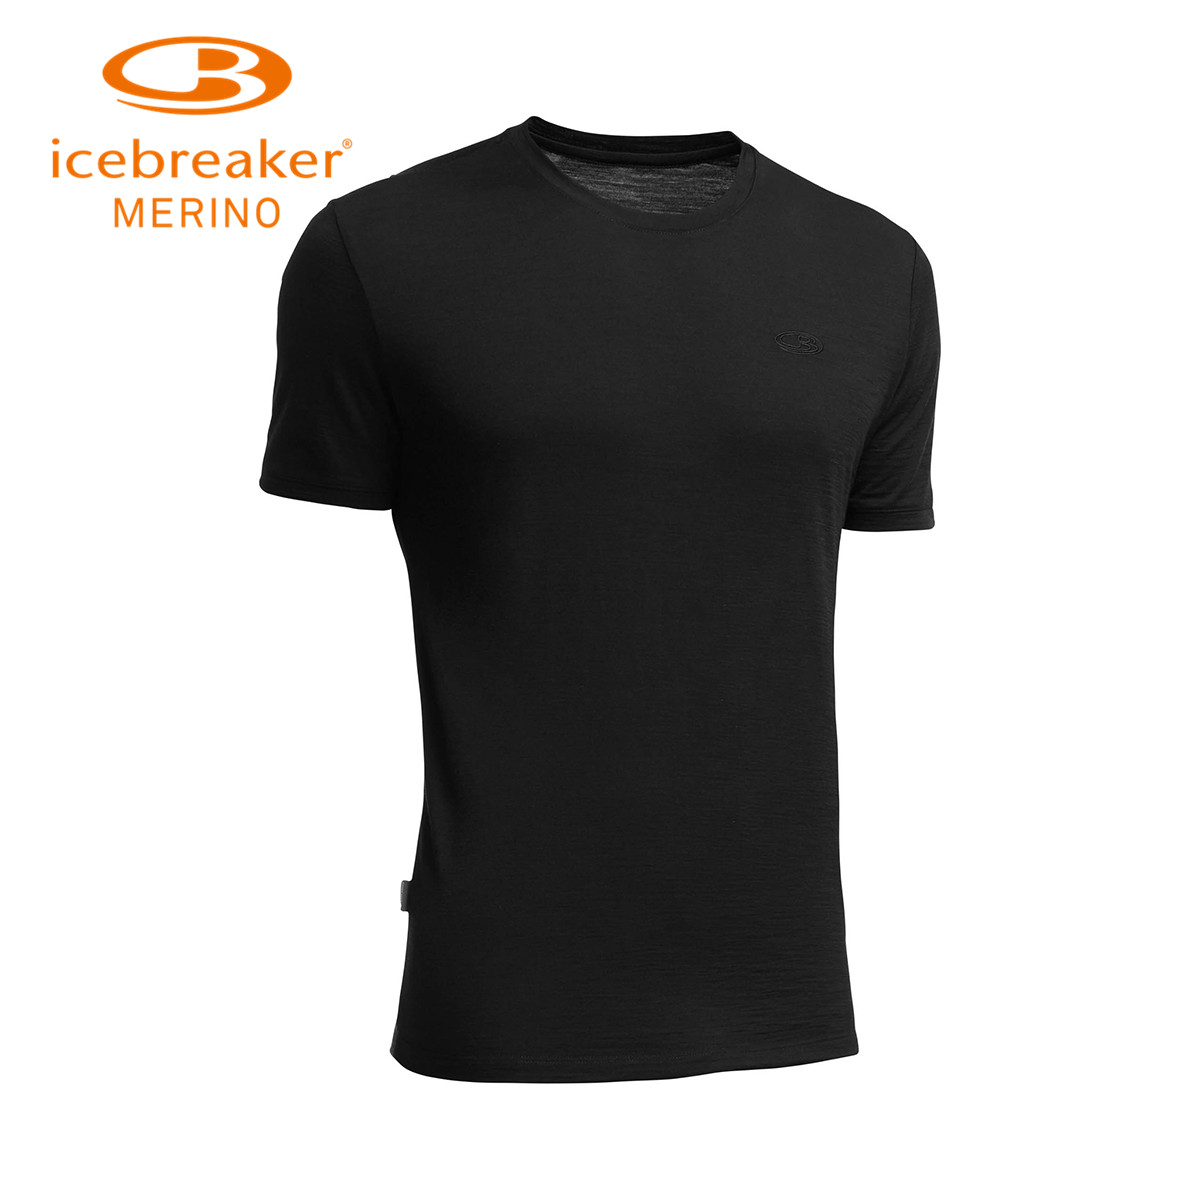 Icebreaker ice extension men's short-sleeved quick-drying t-shirt summer outdoor sports fitness breathable lightweight 150gm